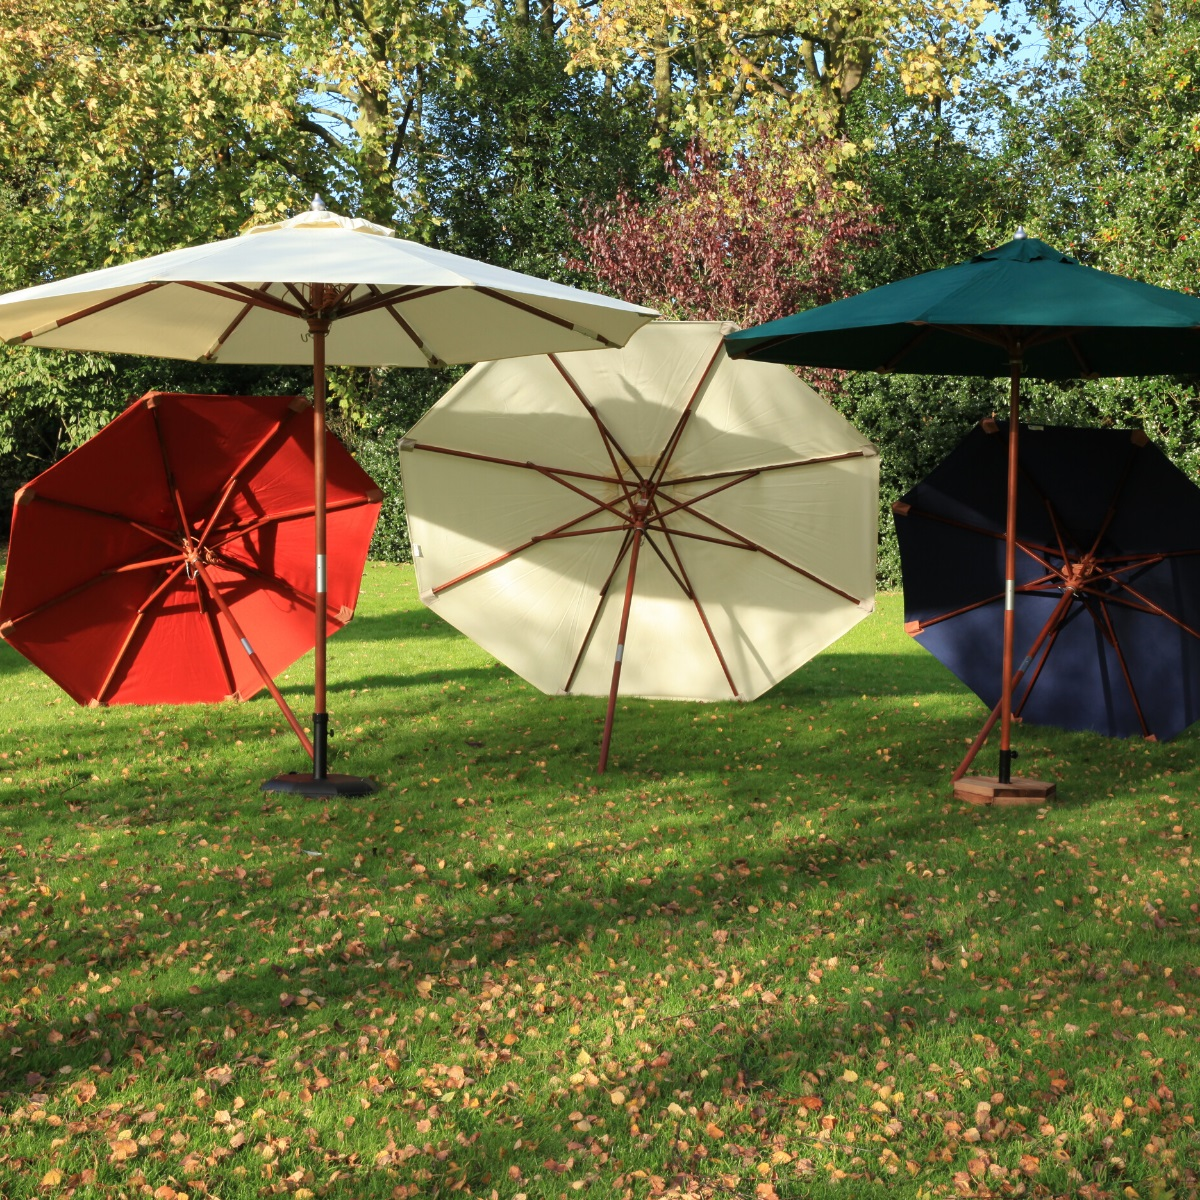 5 parasols in cream, blue, green and terracotta arranged on a lawn